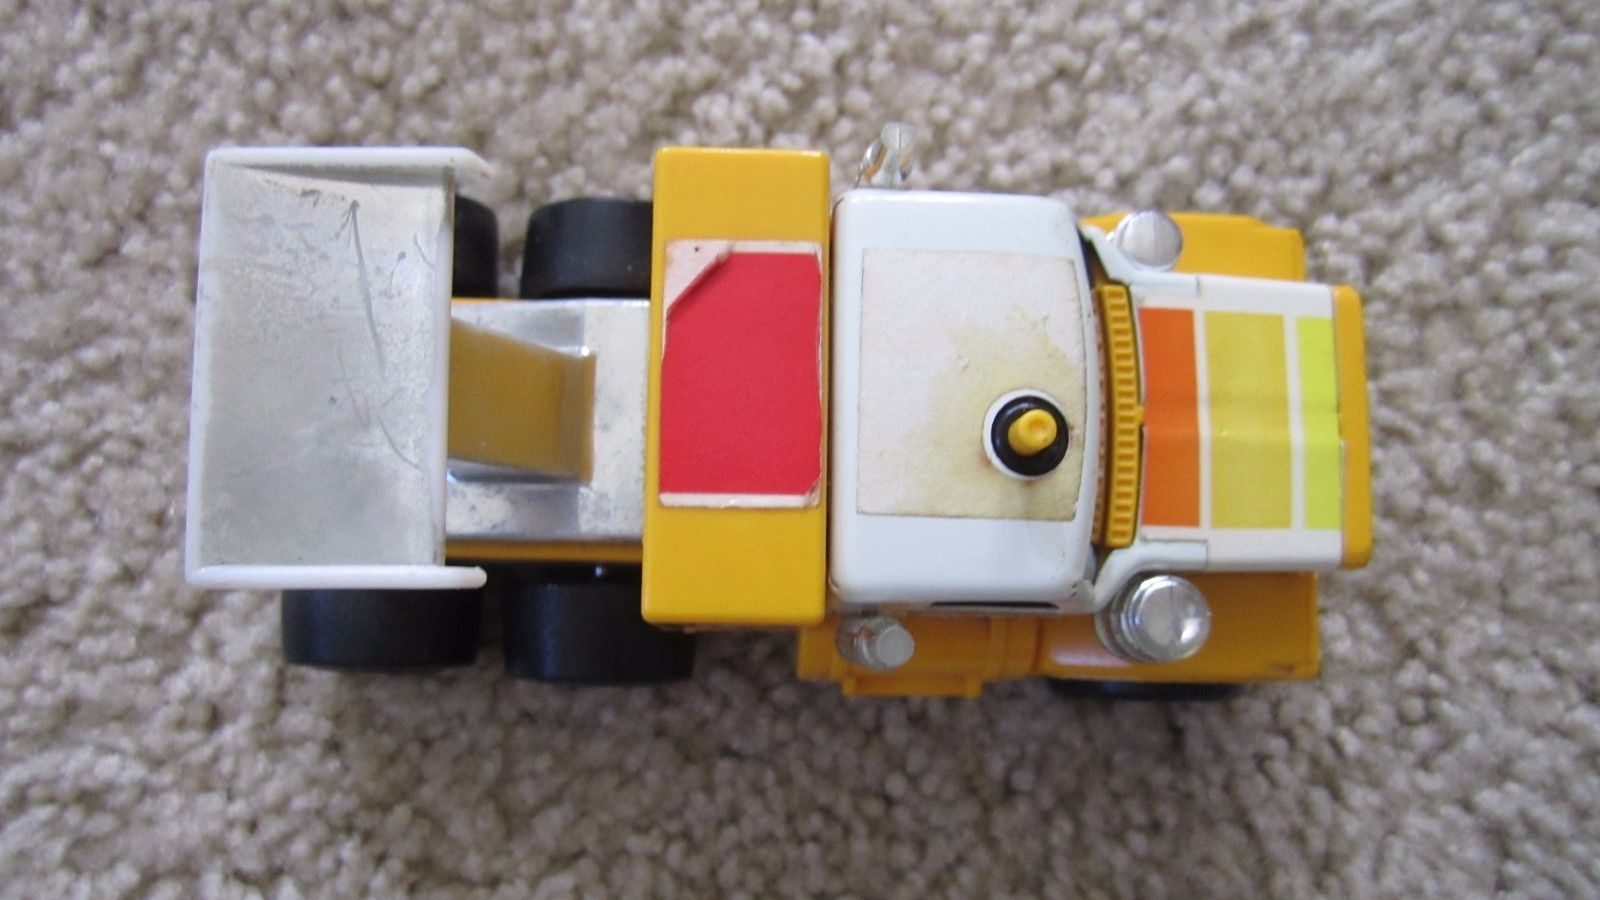 Sunny Yellow Tonka GMC Semi with Spoiler Pull Back and Go action